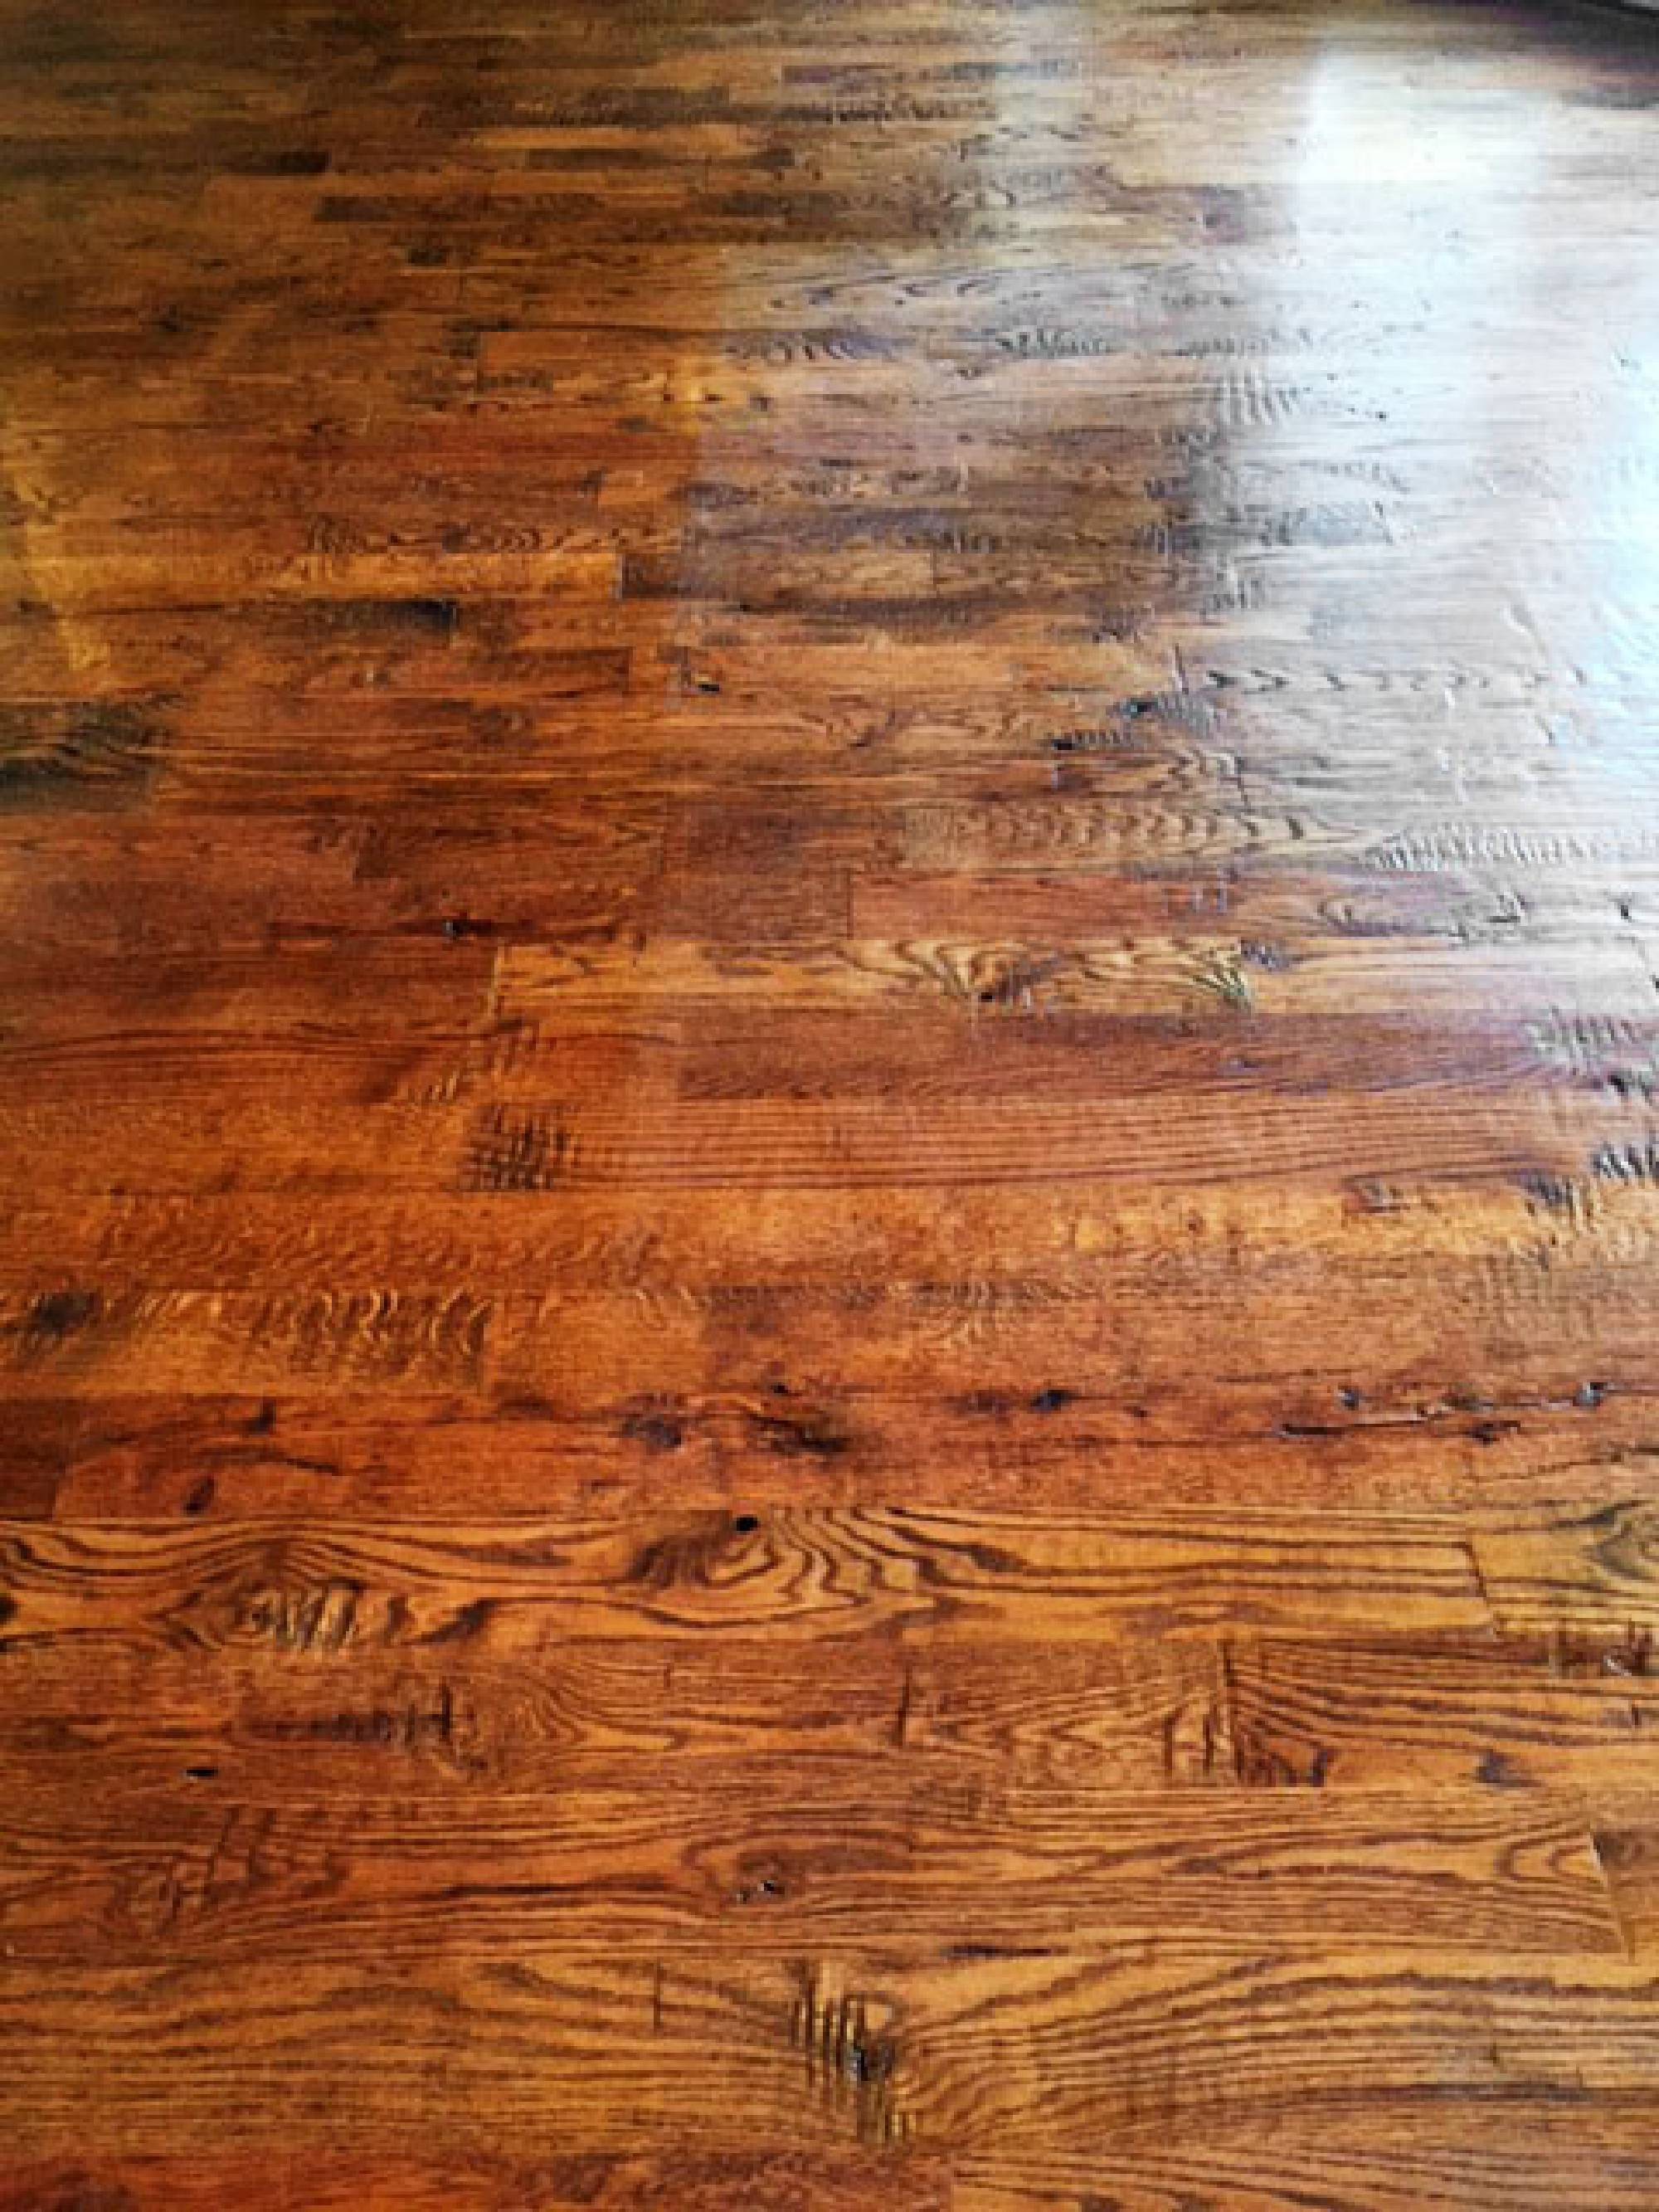 you in sand to refinishing floors beautiful cleaning wood indiana northwest no carpet floor hardwood give stain